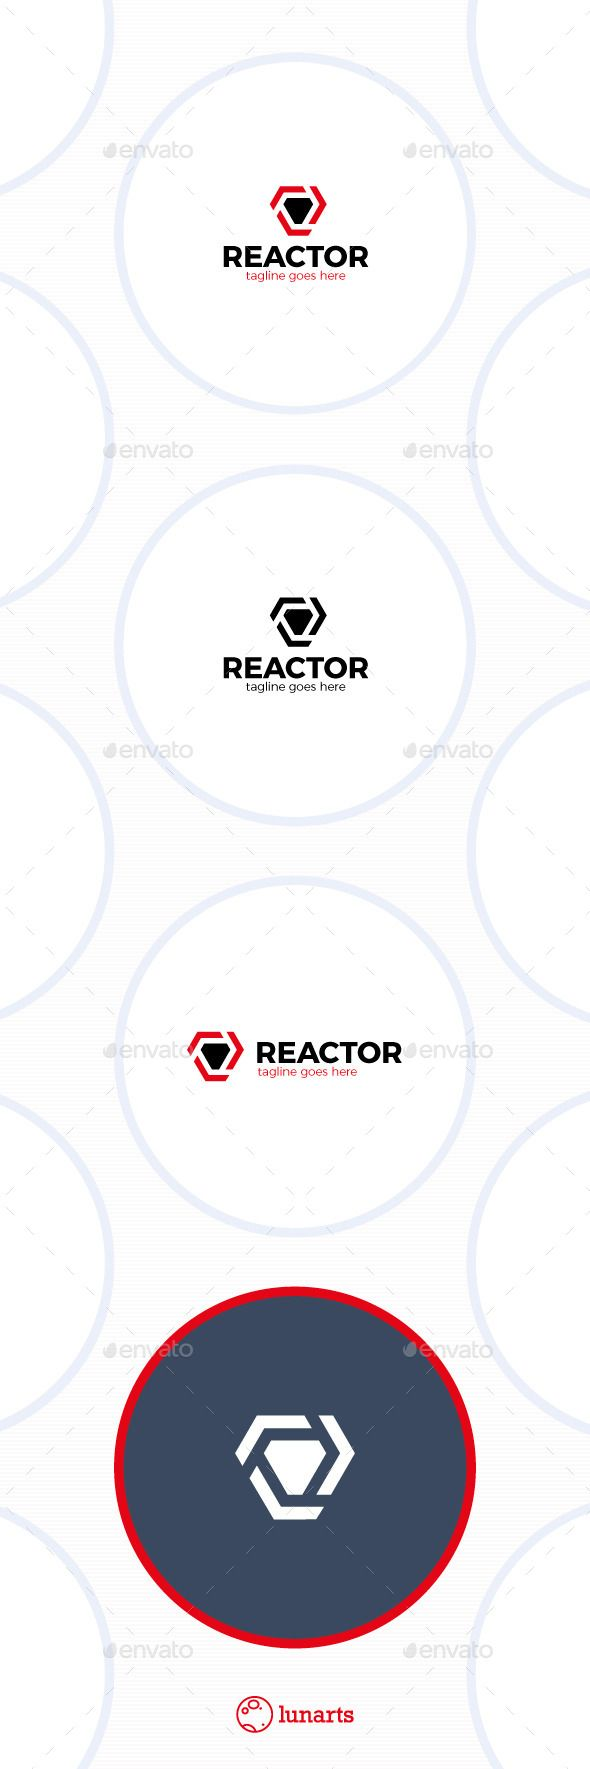 Trinity Arrow Reactor  Logo Design Template Vector #logotype Download it here: http://graphicriver.net/item/trinity-arrow-reactor-logo/11891476?s_rank=685?ref=nexion